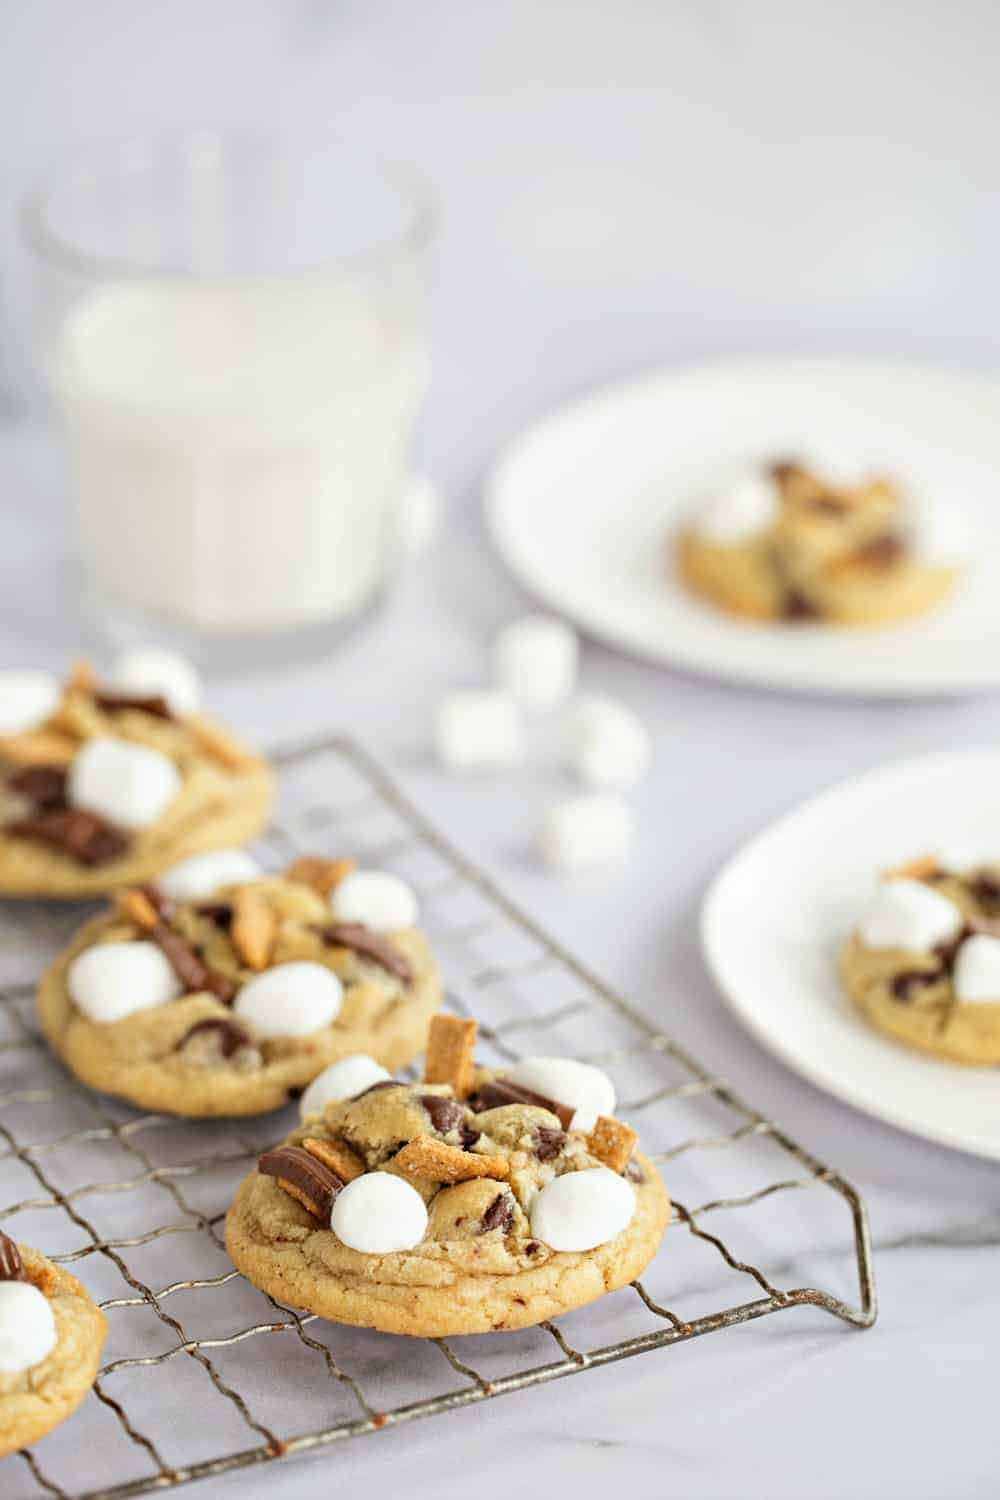 S'more's cookies on a metal cooling rack with white plates with cookies on them in the background